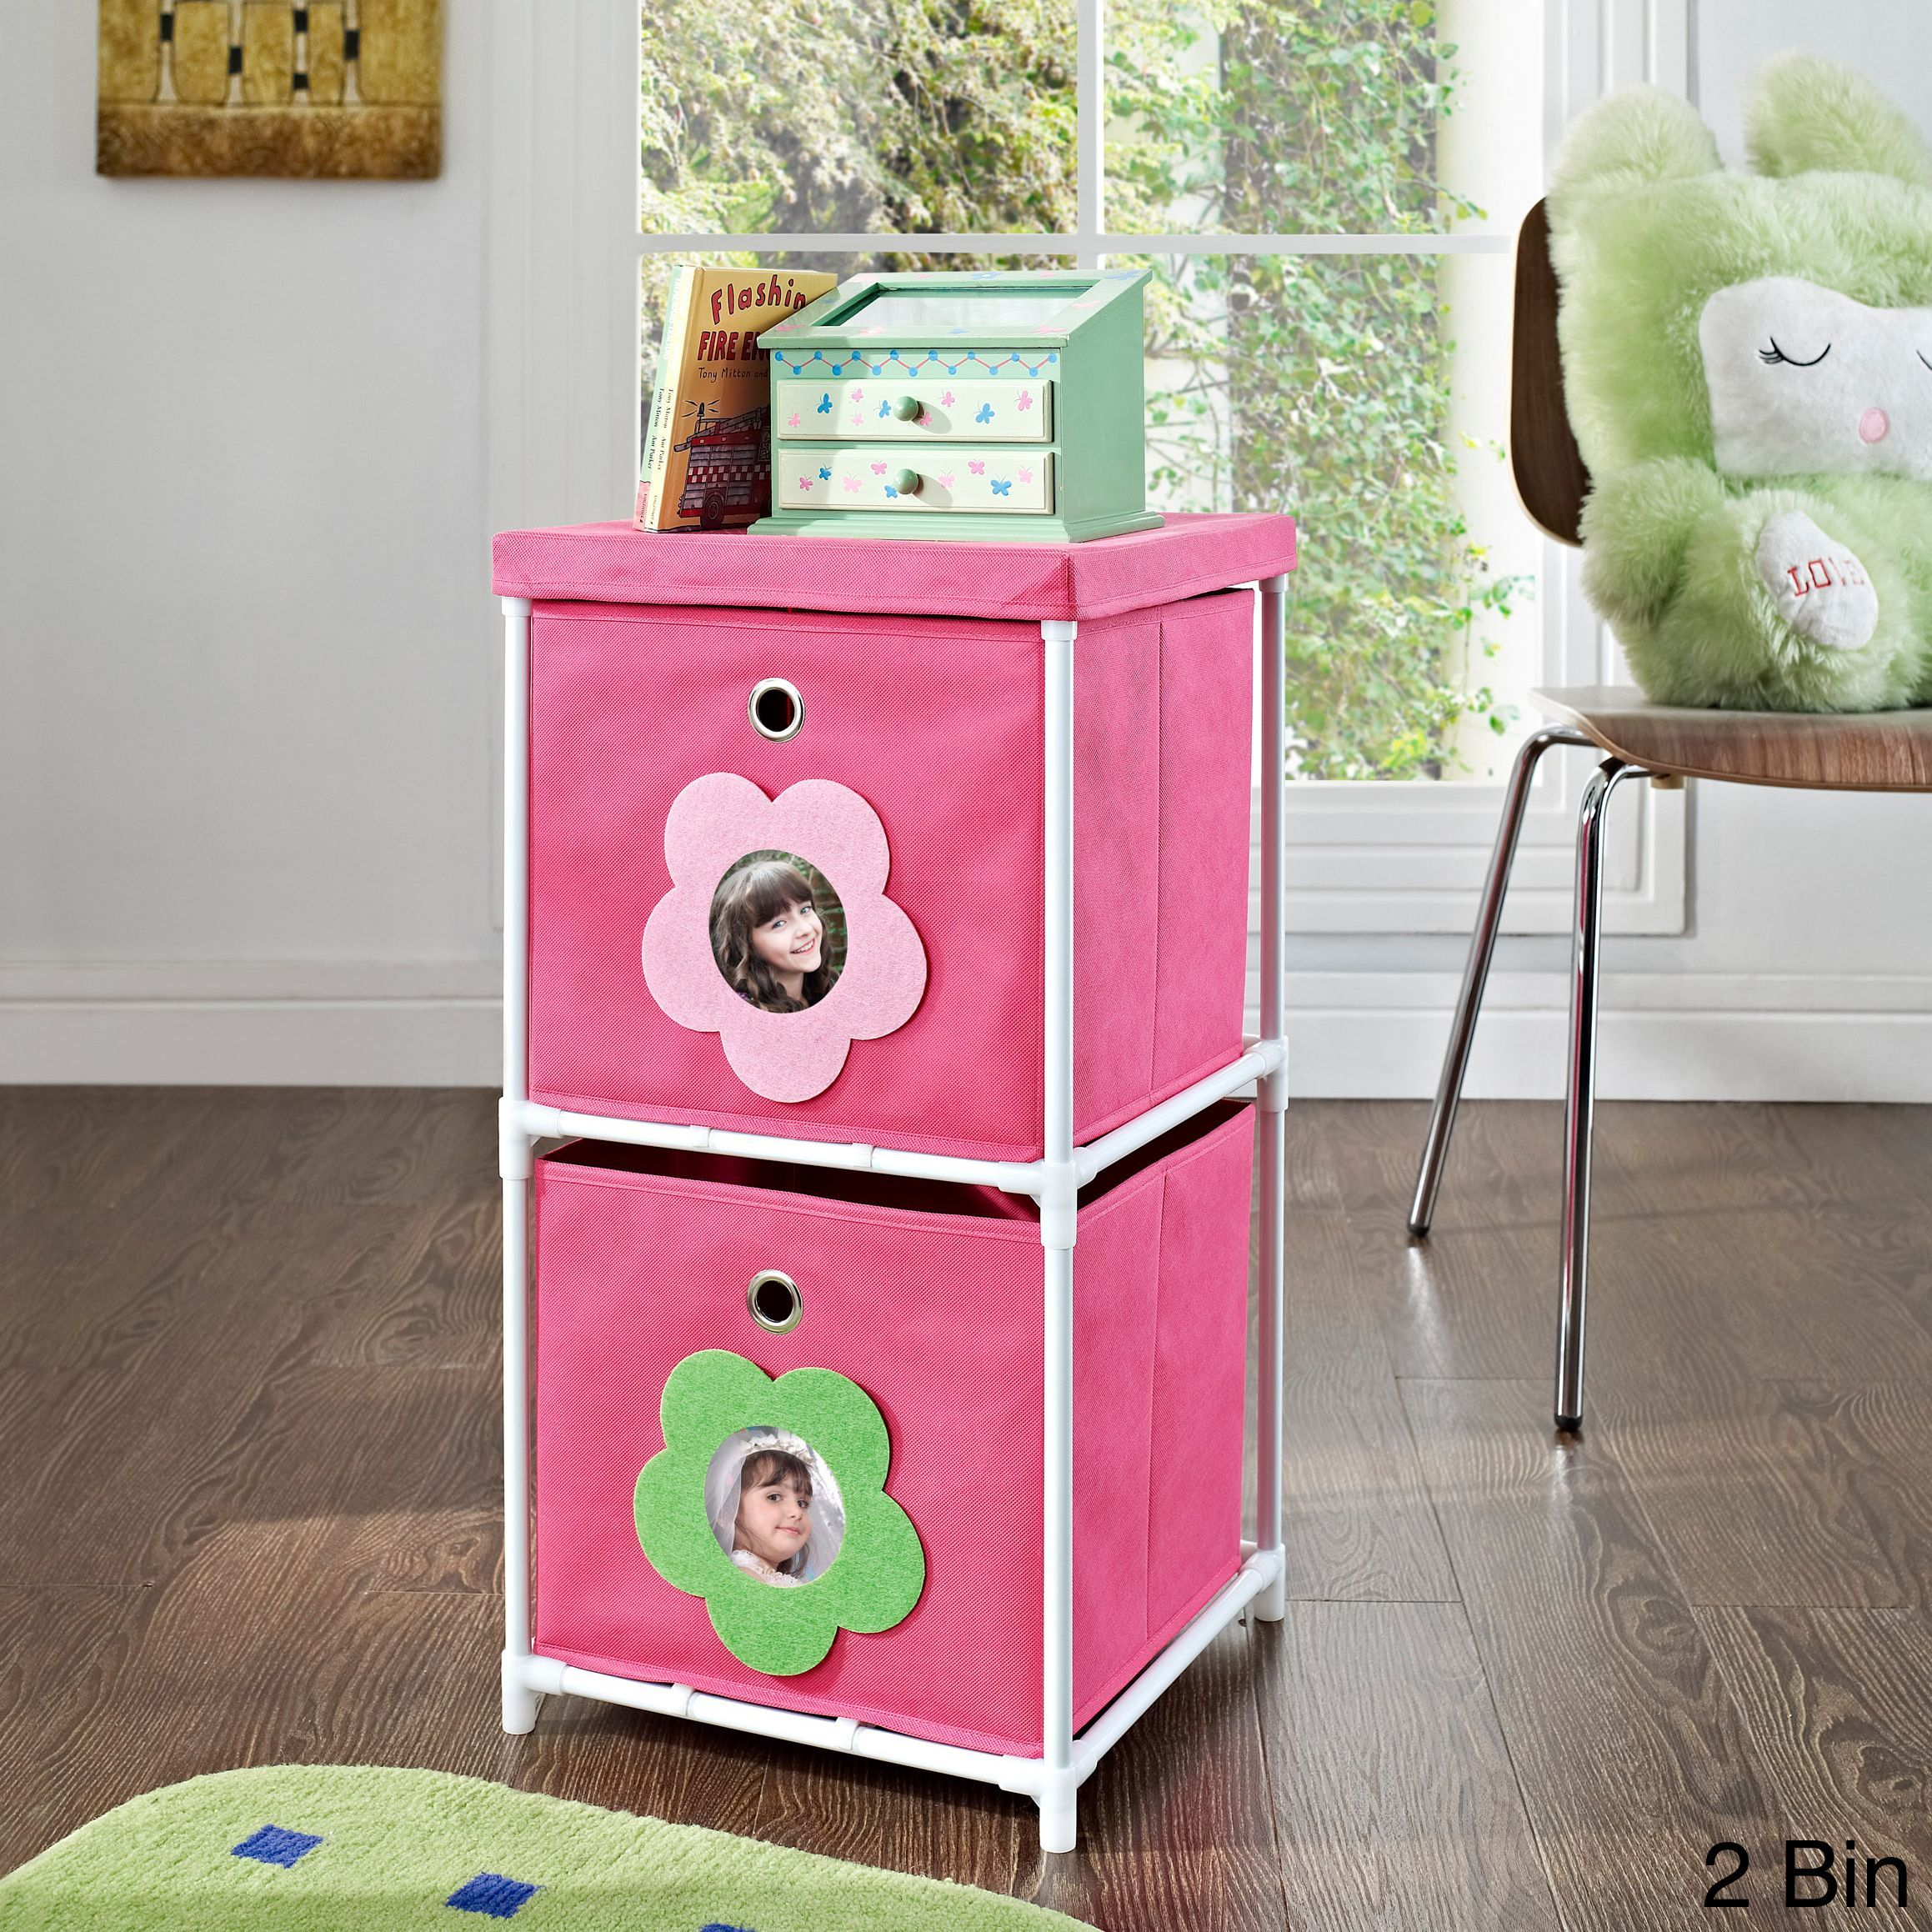 Altra kidsu pink flower bin storage system products pinterest